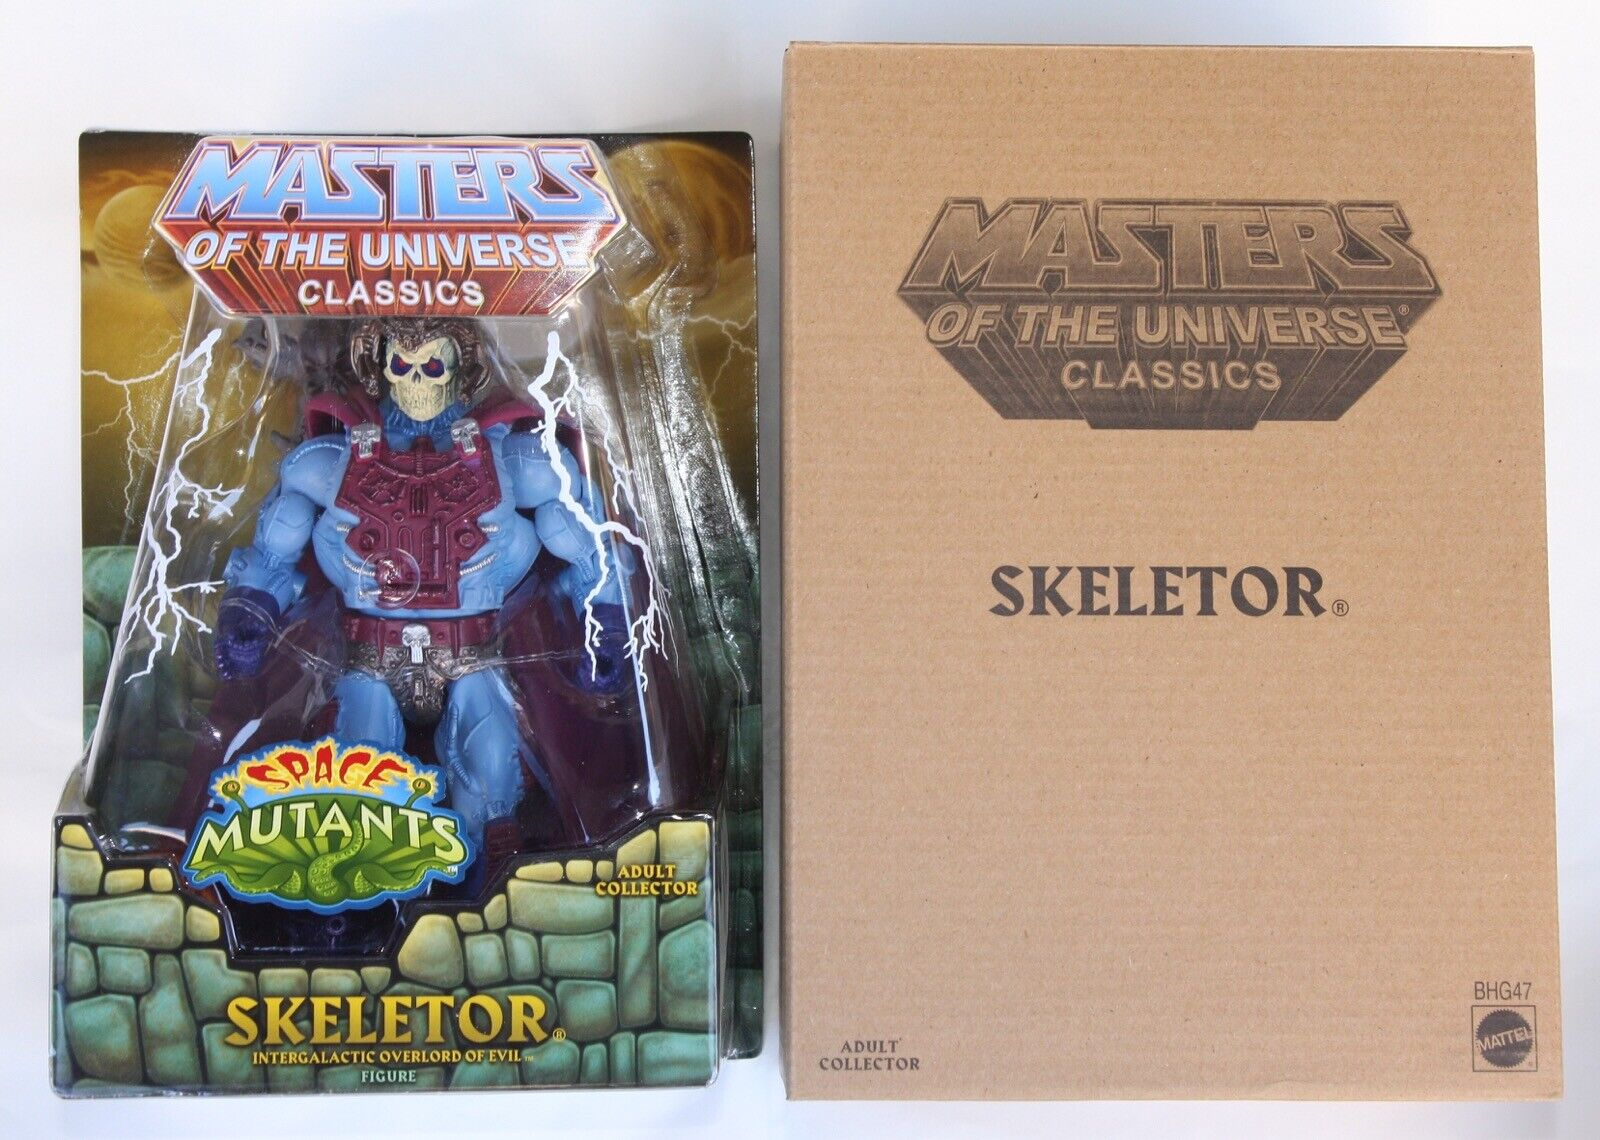 SKELETOR Intergalactic New Adventures MOC Mattel Masters of the Universe Classic